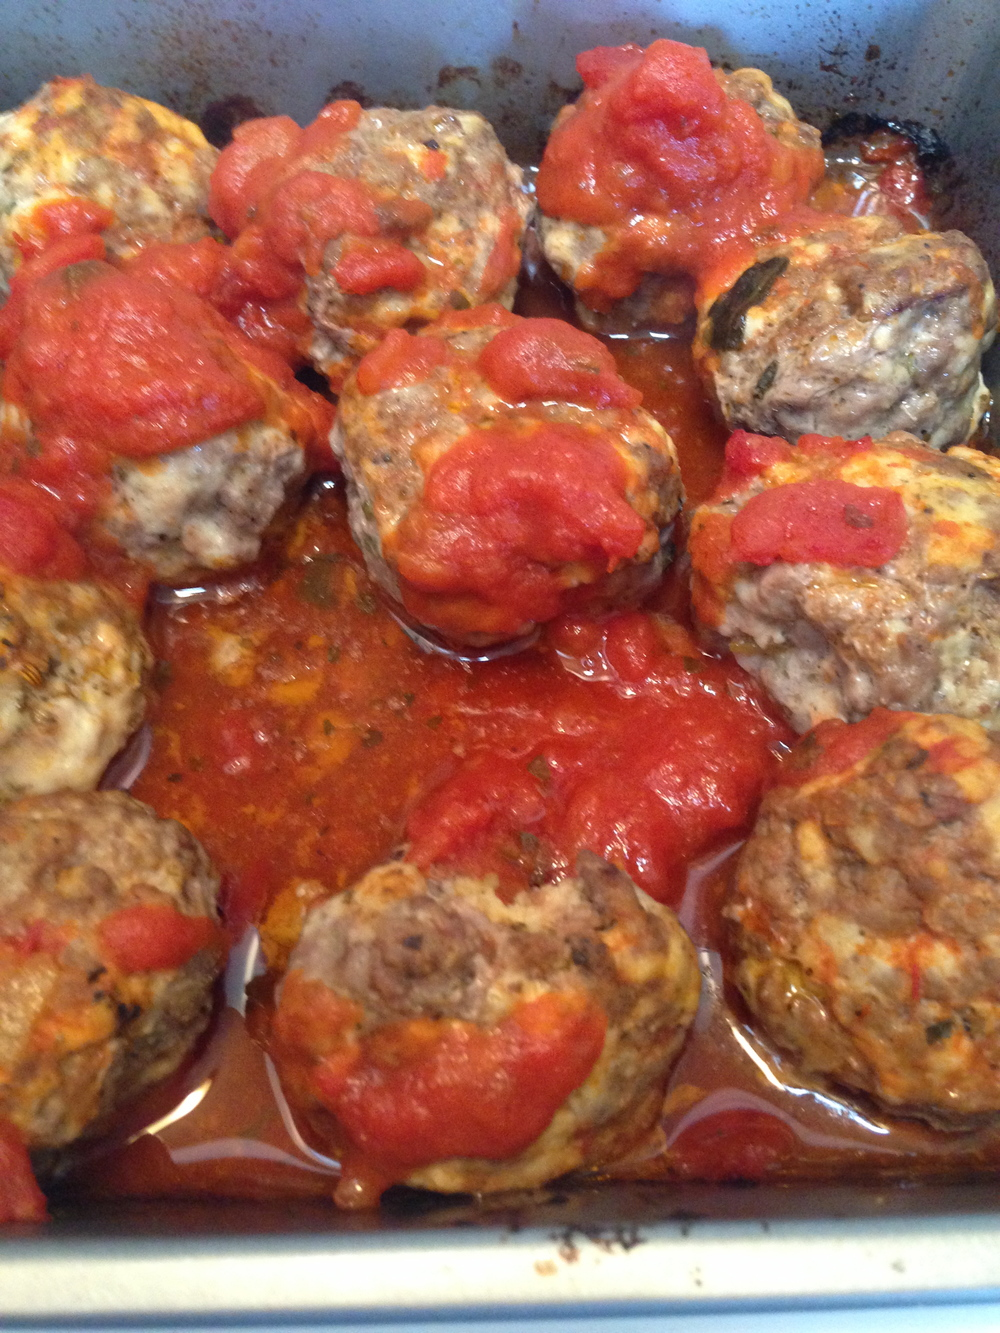 One trick to moist meatballs is taking them out of the oven and adding some more red sauce before placing them back in the oven for the last 5 - 7 minutes.